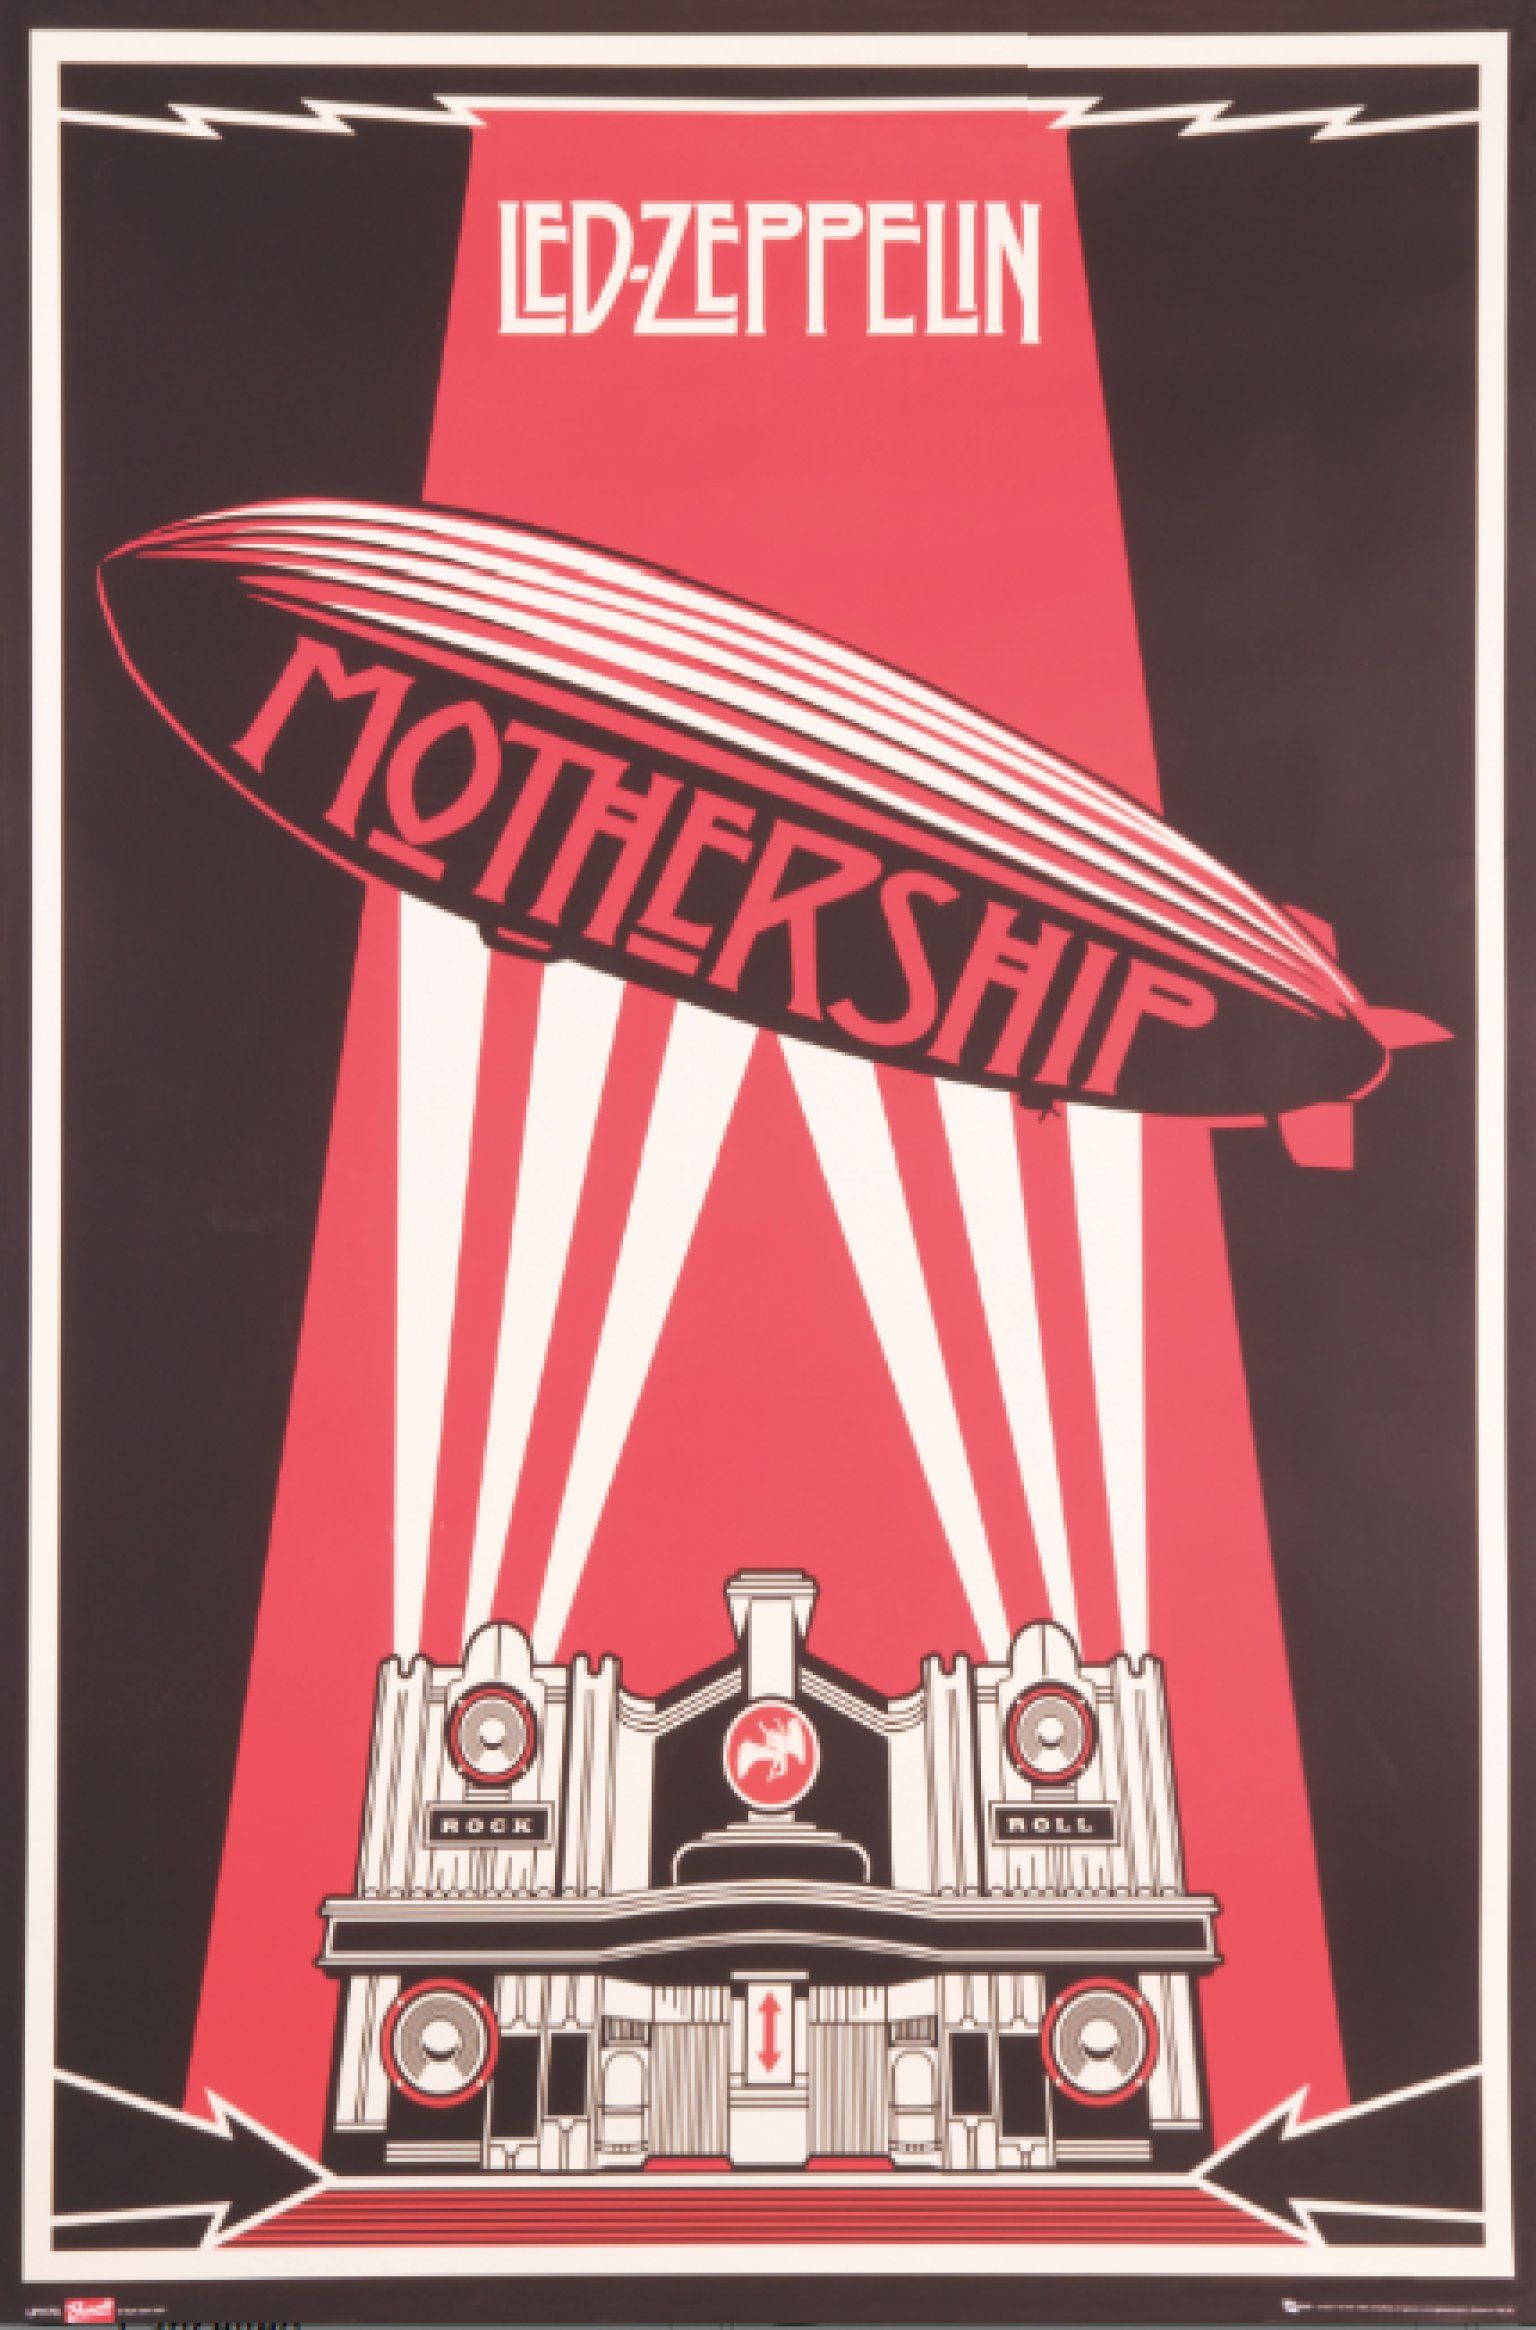 Photo Collection Mothership Led Zeppelin Phone Wallpaper